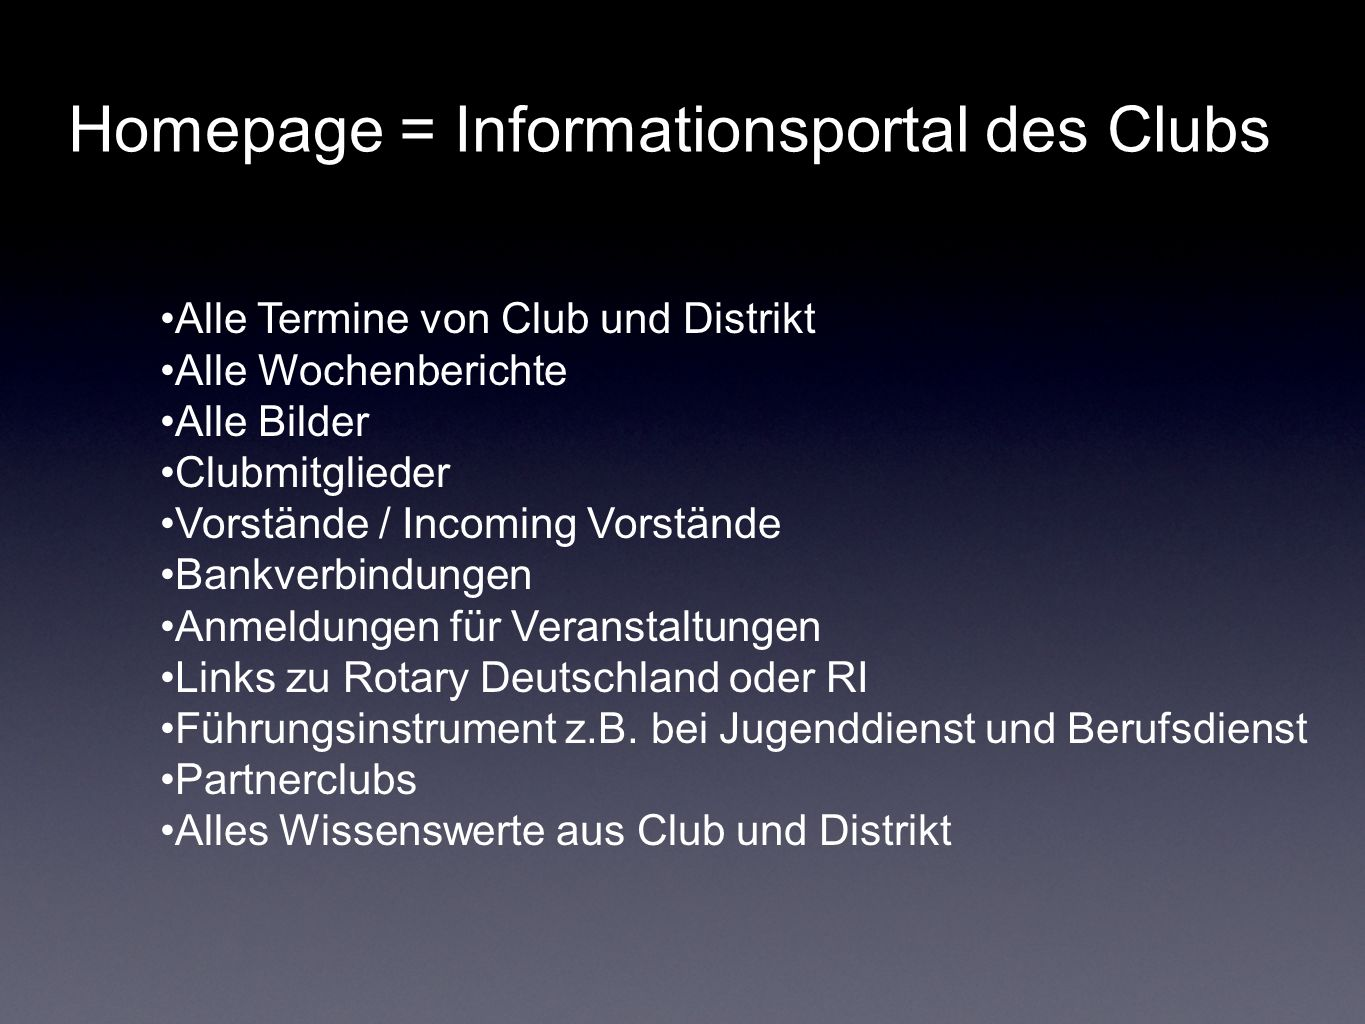 Homepage = Informationsportal des Clubs